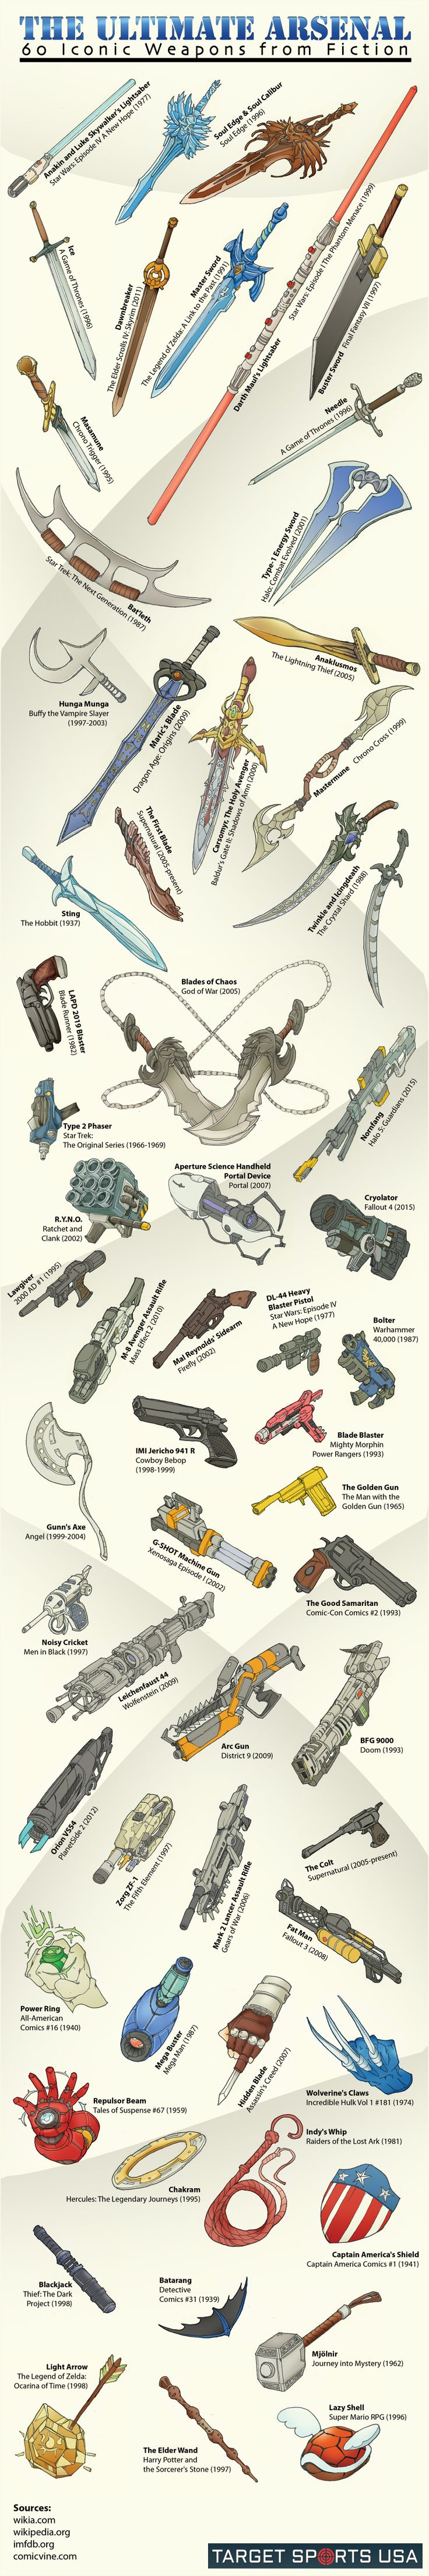 The Ultimate Arsenal: 60 Iconic Weapons from Fiction #infographic ~ Visualistan